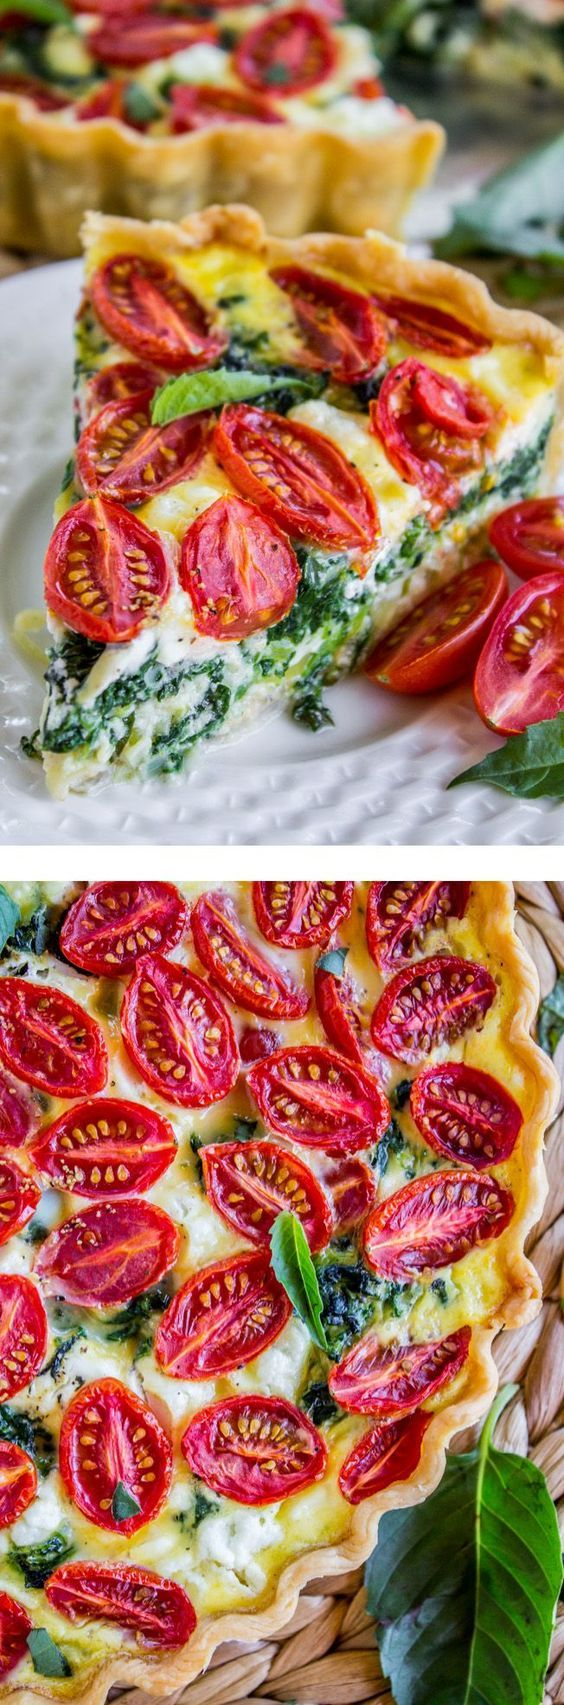 Cherry Tomato, Leek, and Spinach Quiche from The Food Charlatan. Quiche is the perfect for spring! This vegetarian recipe combines cherry tomatoes, leeks, spinach and goat cheese to make a great break